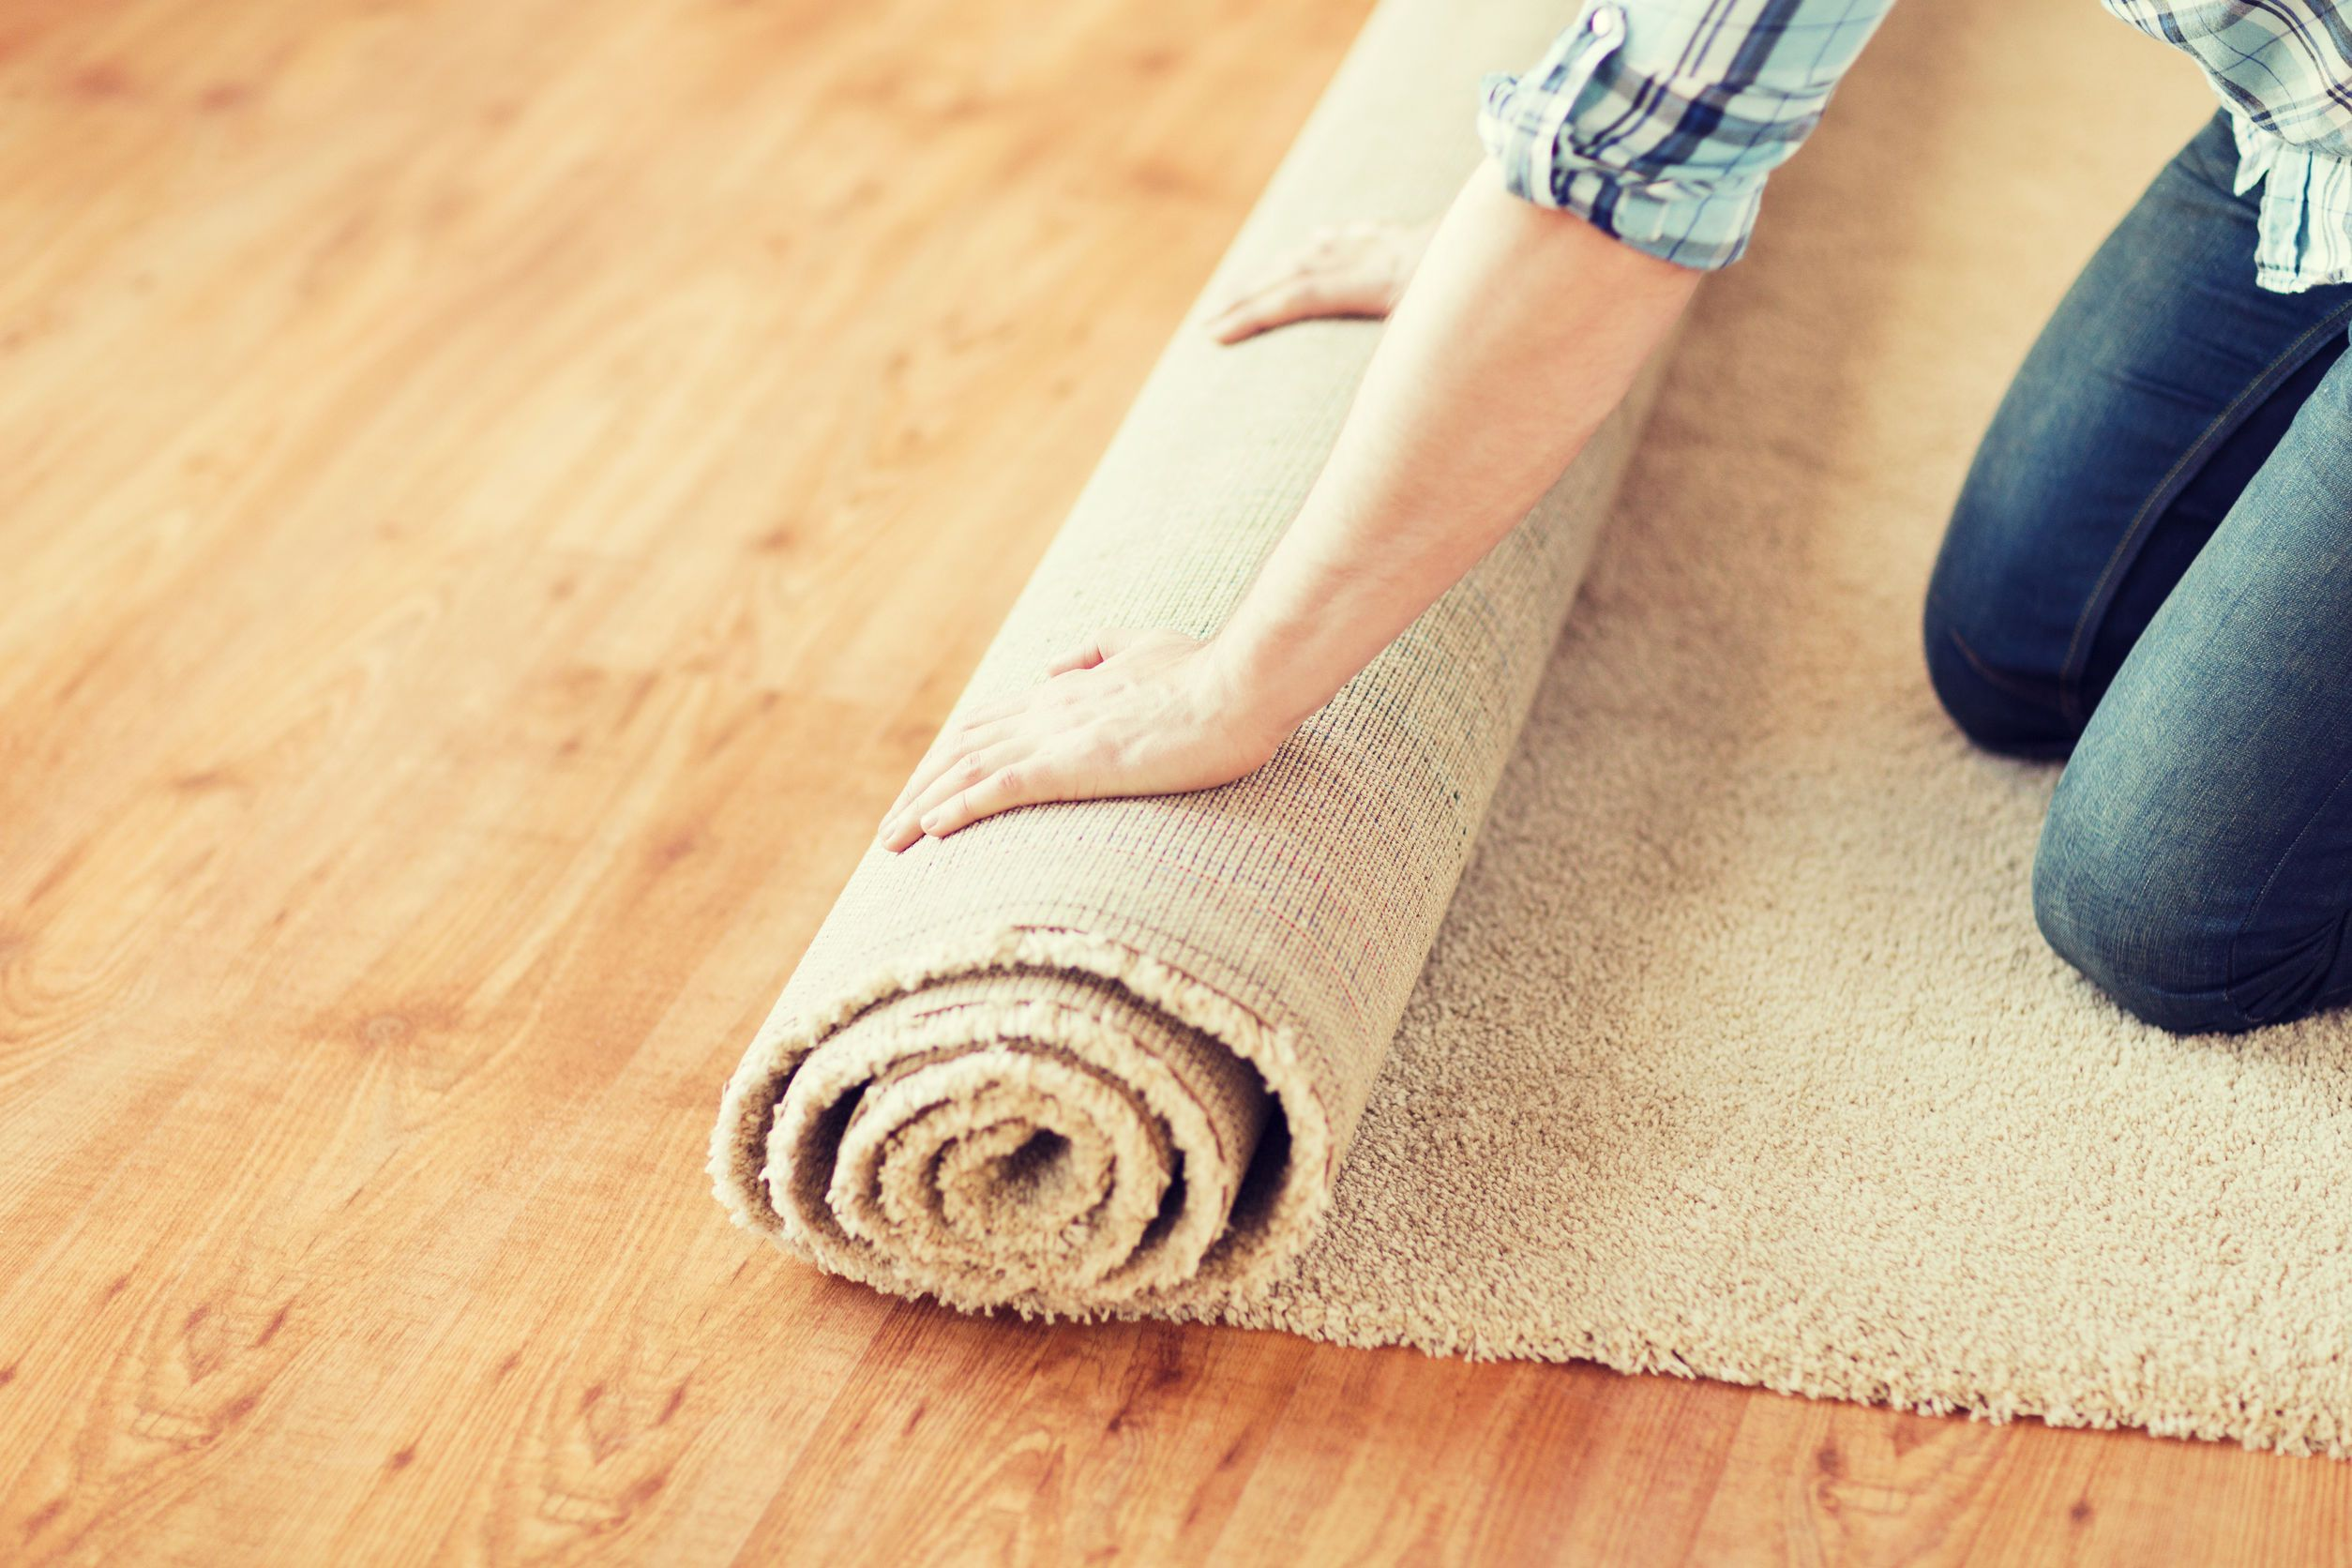 Installing Carpet Is Already Expensive And Ing Padding May Seem Like An Unnecessary Added Expense Before You Think About Skipping The